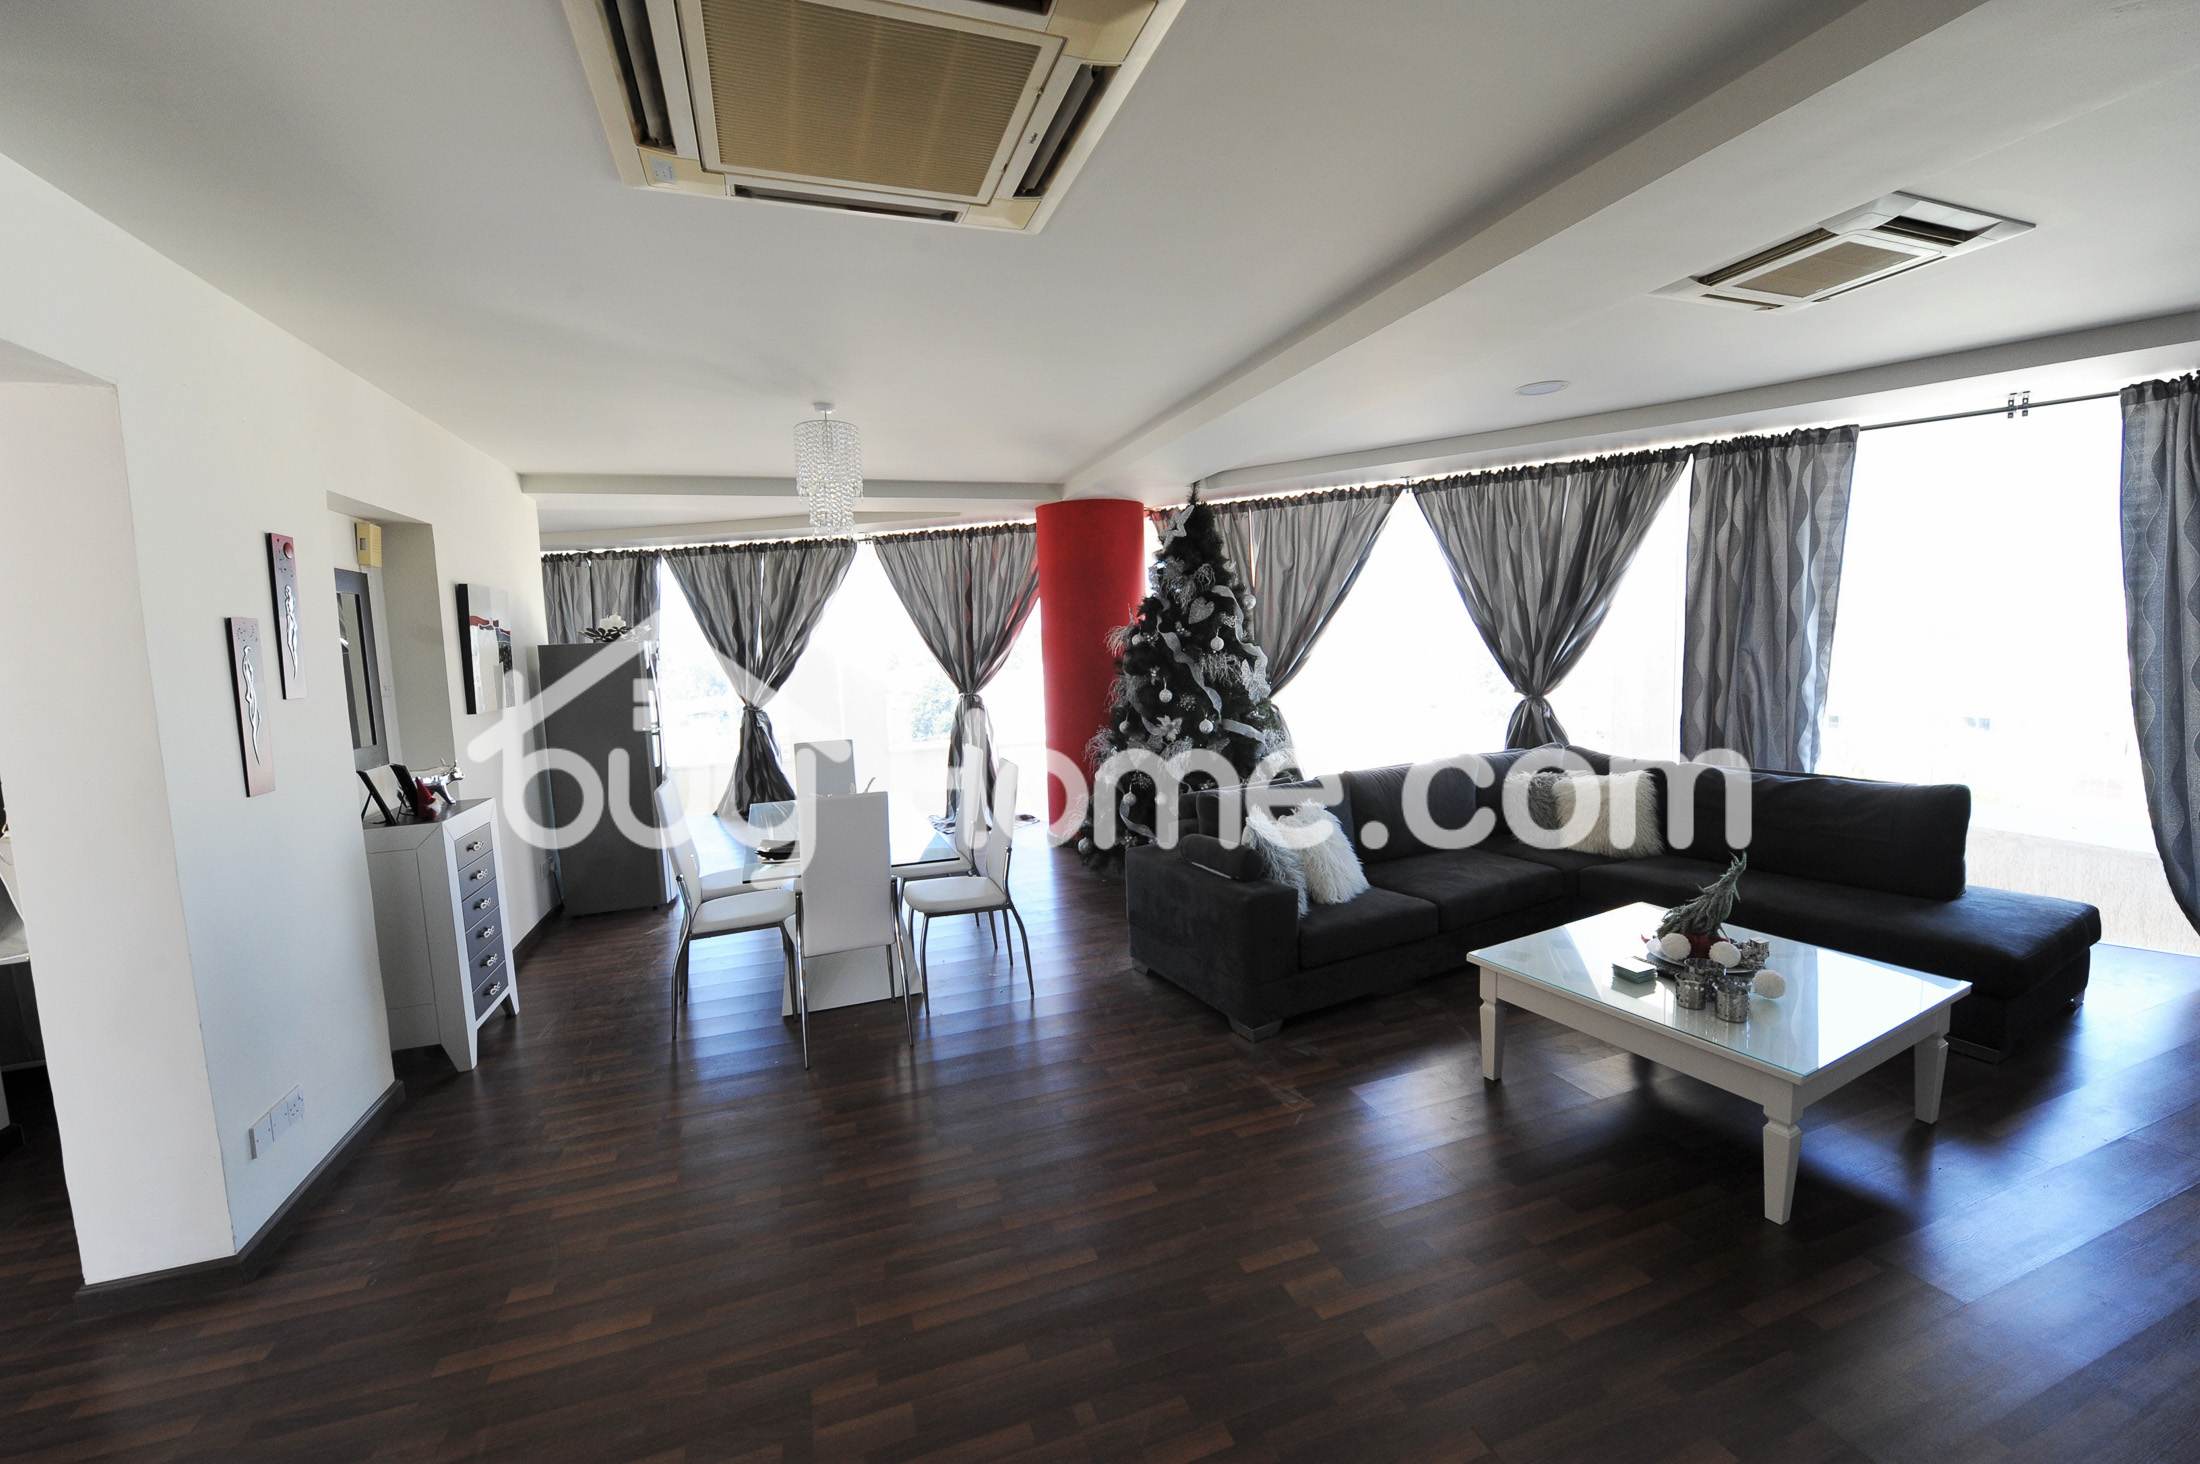 1 Bedroom Penthouse | BuyHome